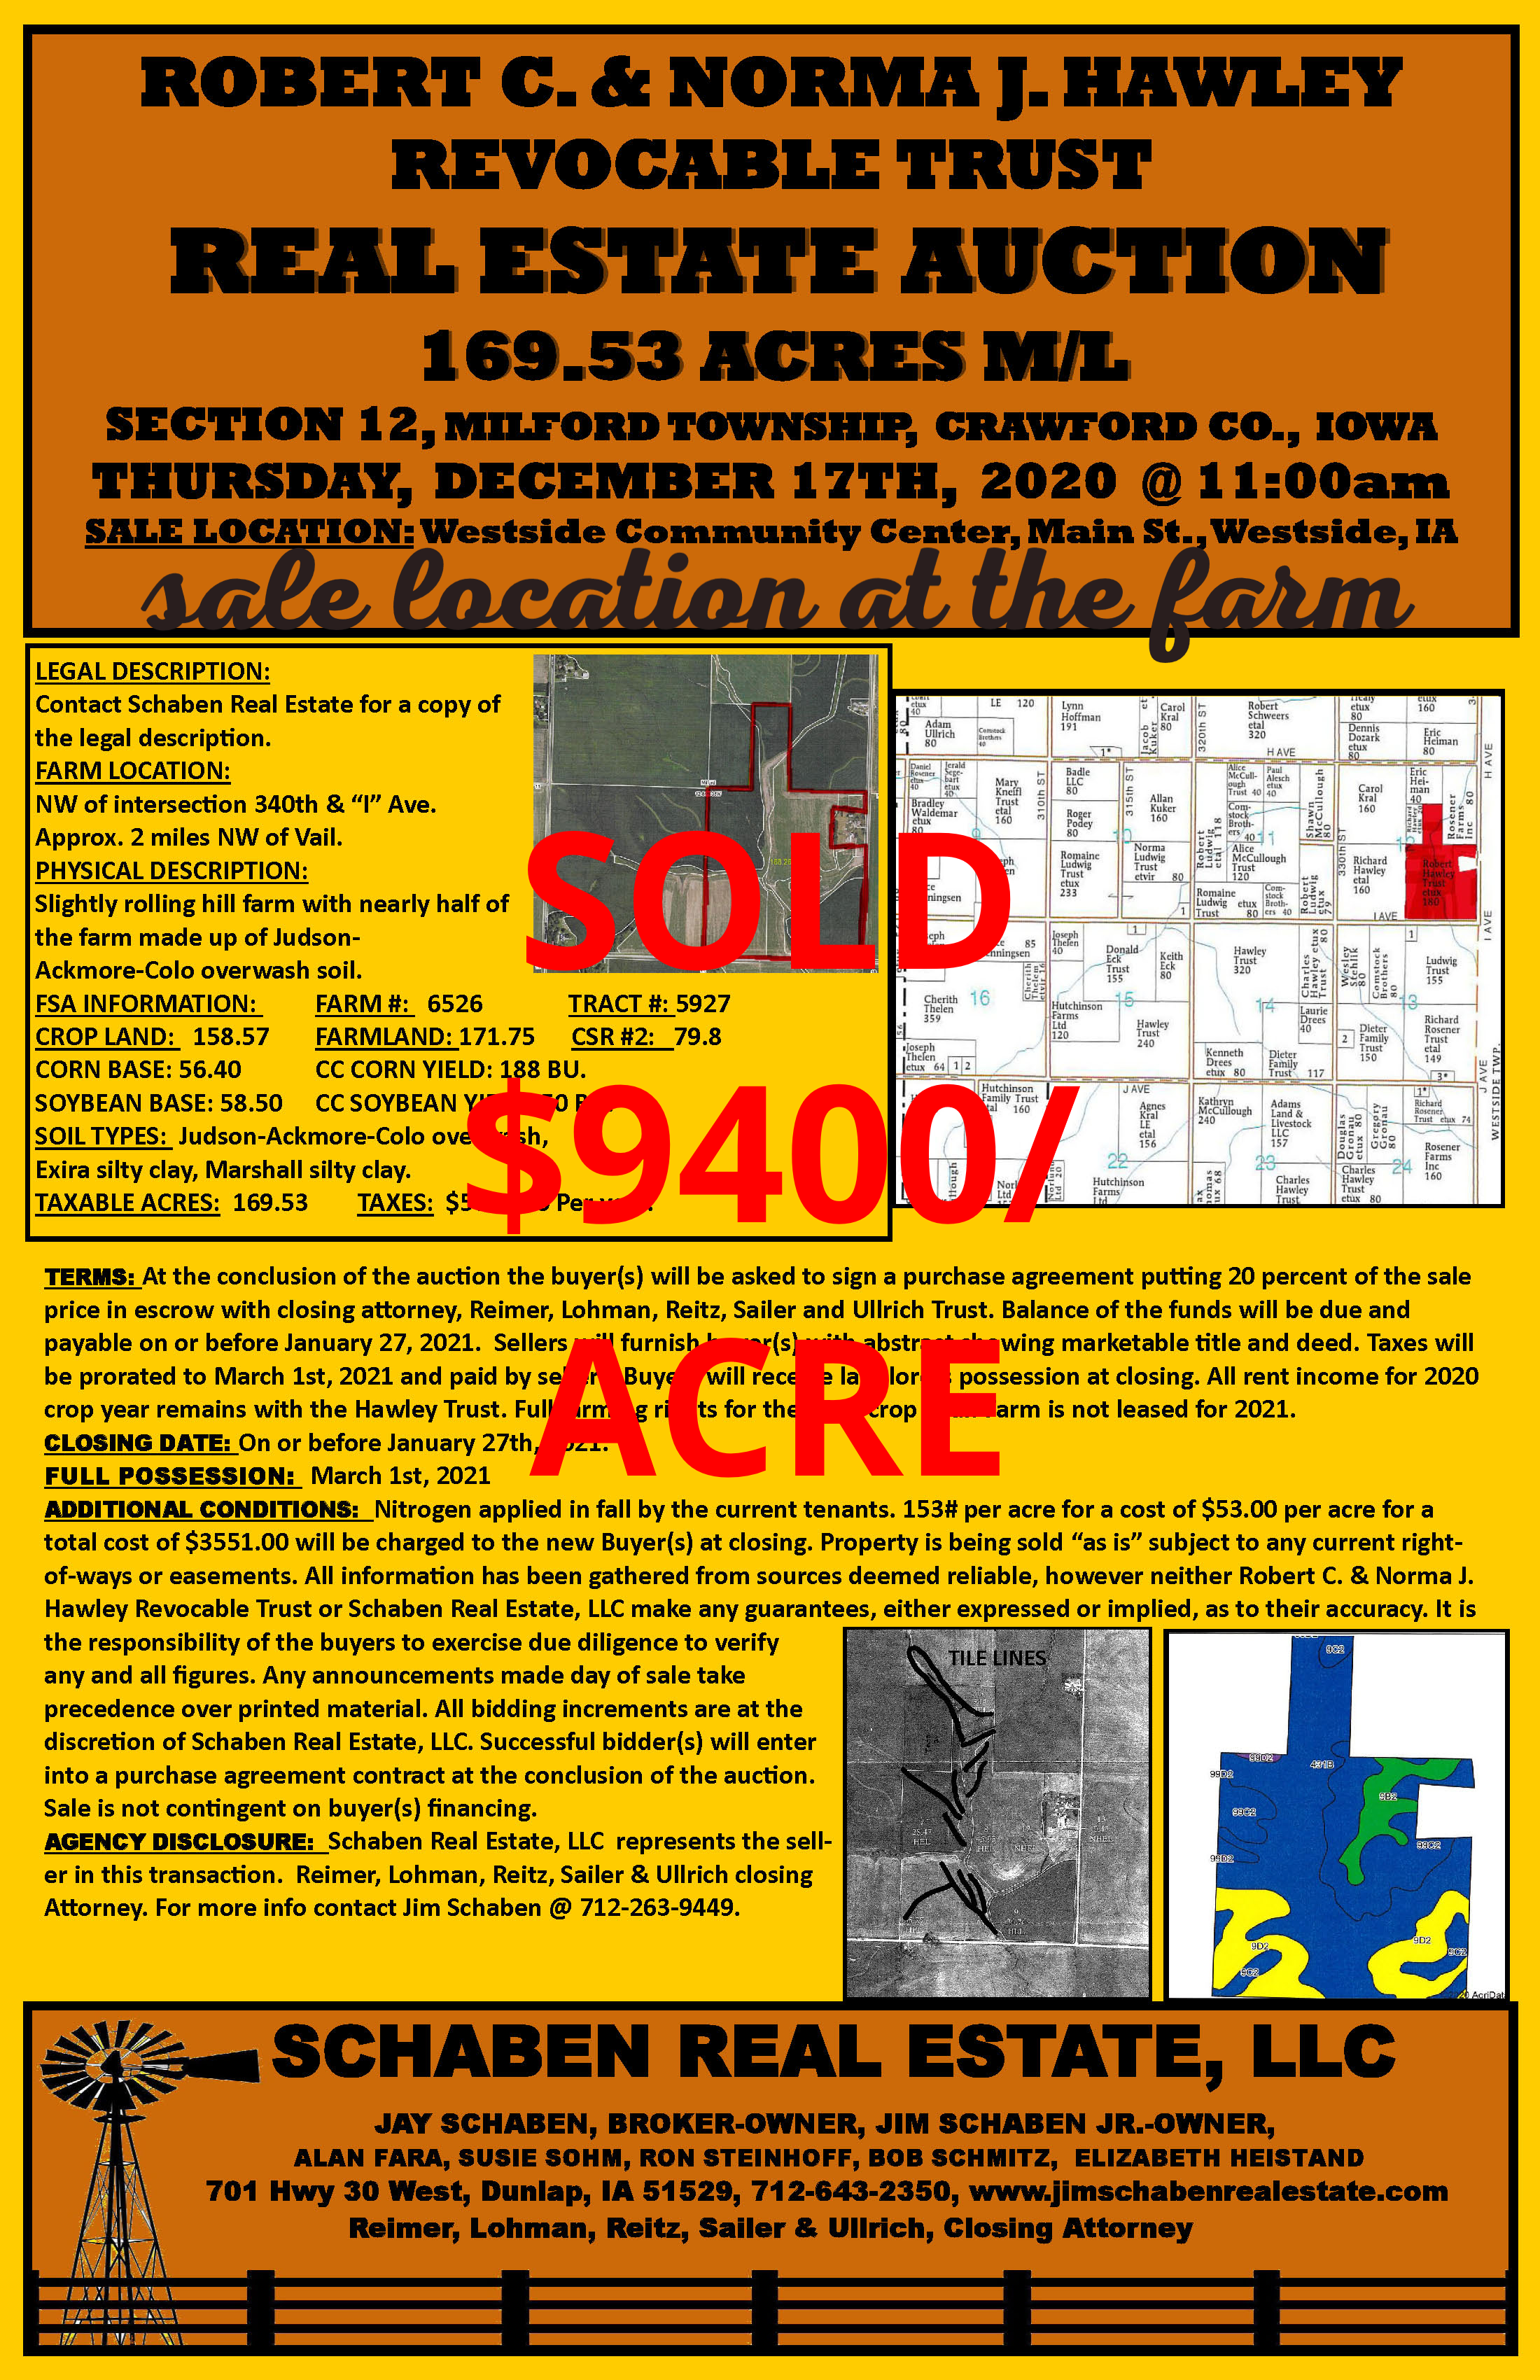 Sale Location changed to be at the farm. From Vail go 2 miles north on M55 then 1/2 mile west on E25